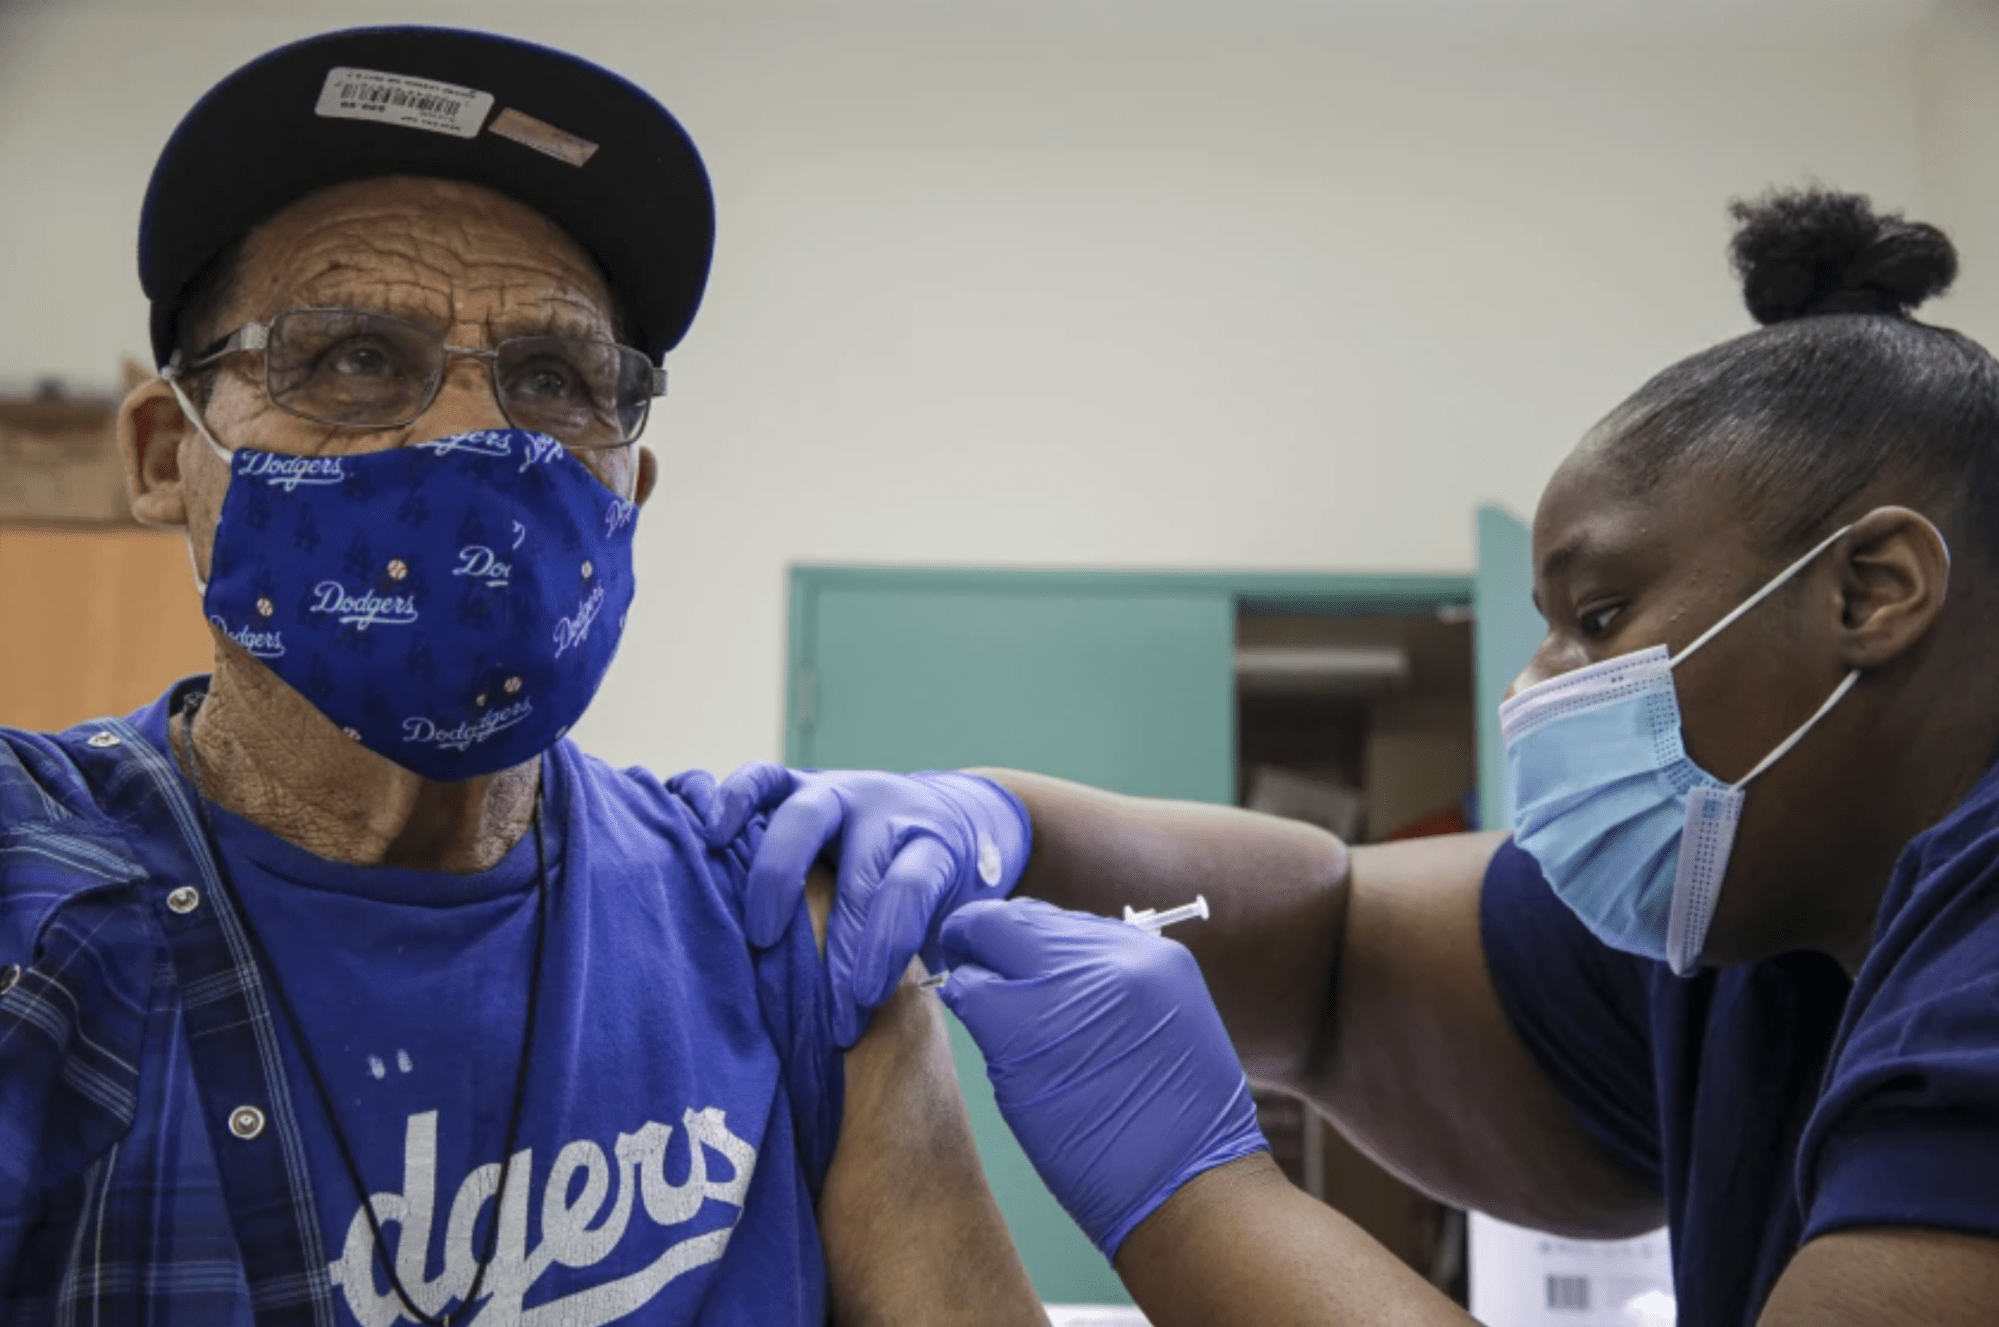 Jewel Morris, right, administers a Pfizer COVID-19 vaccine at mobile vaccine clinic at Roosevelt Park.(Irfan Khan / Los Angeles Times)